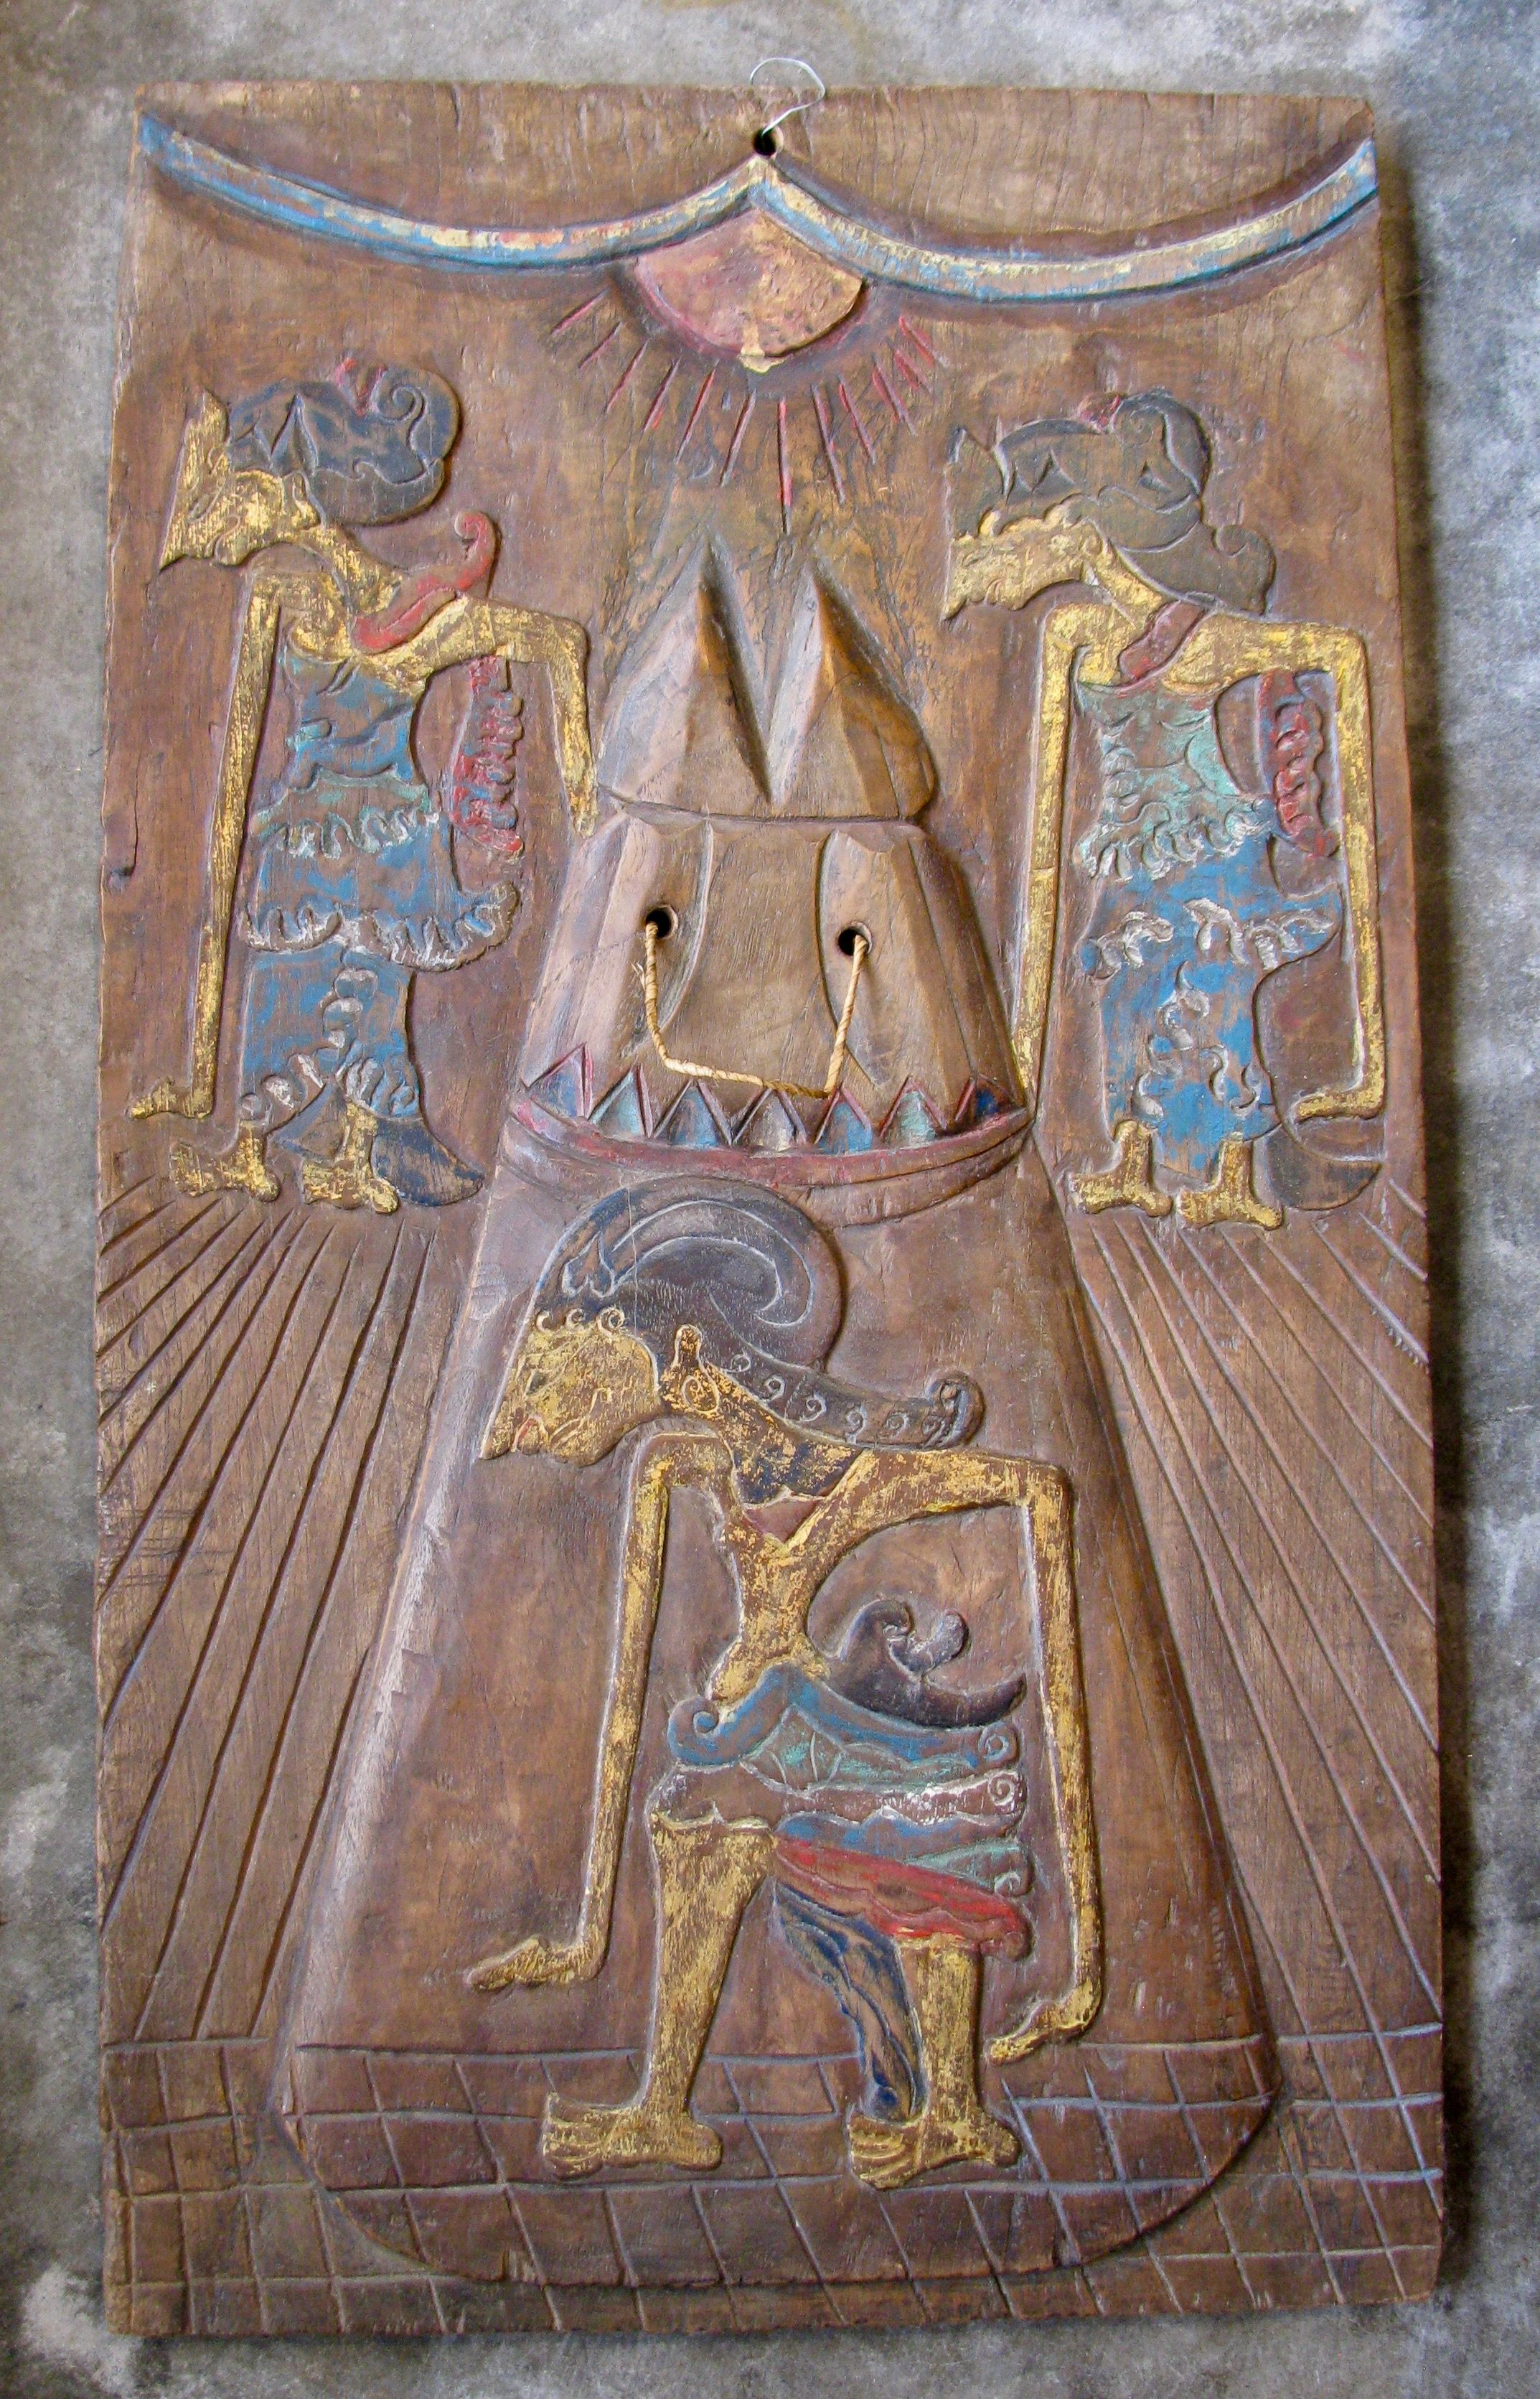 A polychrome Kris Board from Yogakarta Java Things Made of Wood